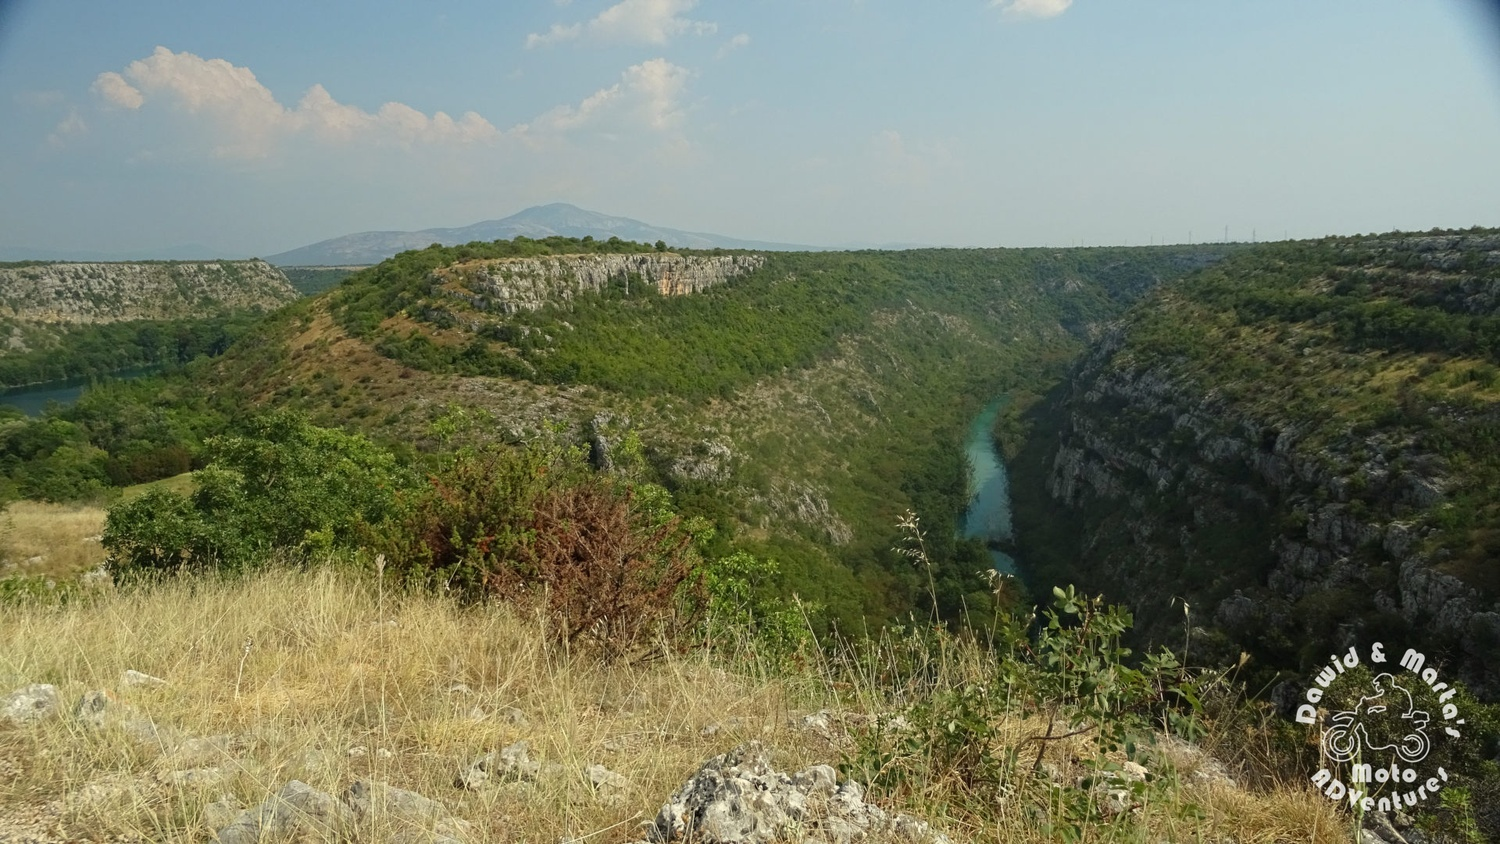 The Krk River canyon